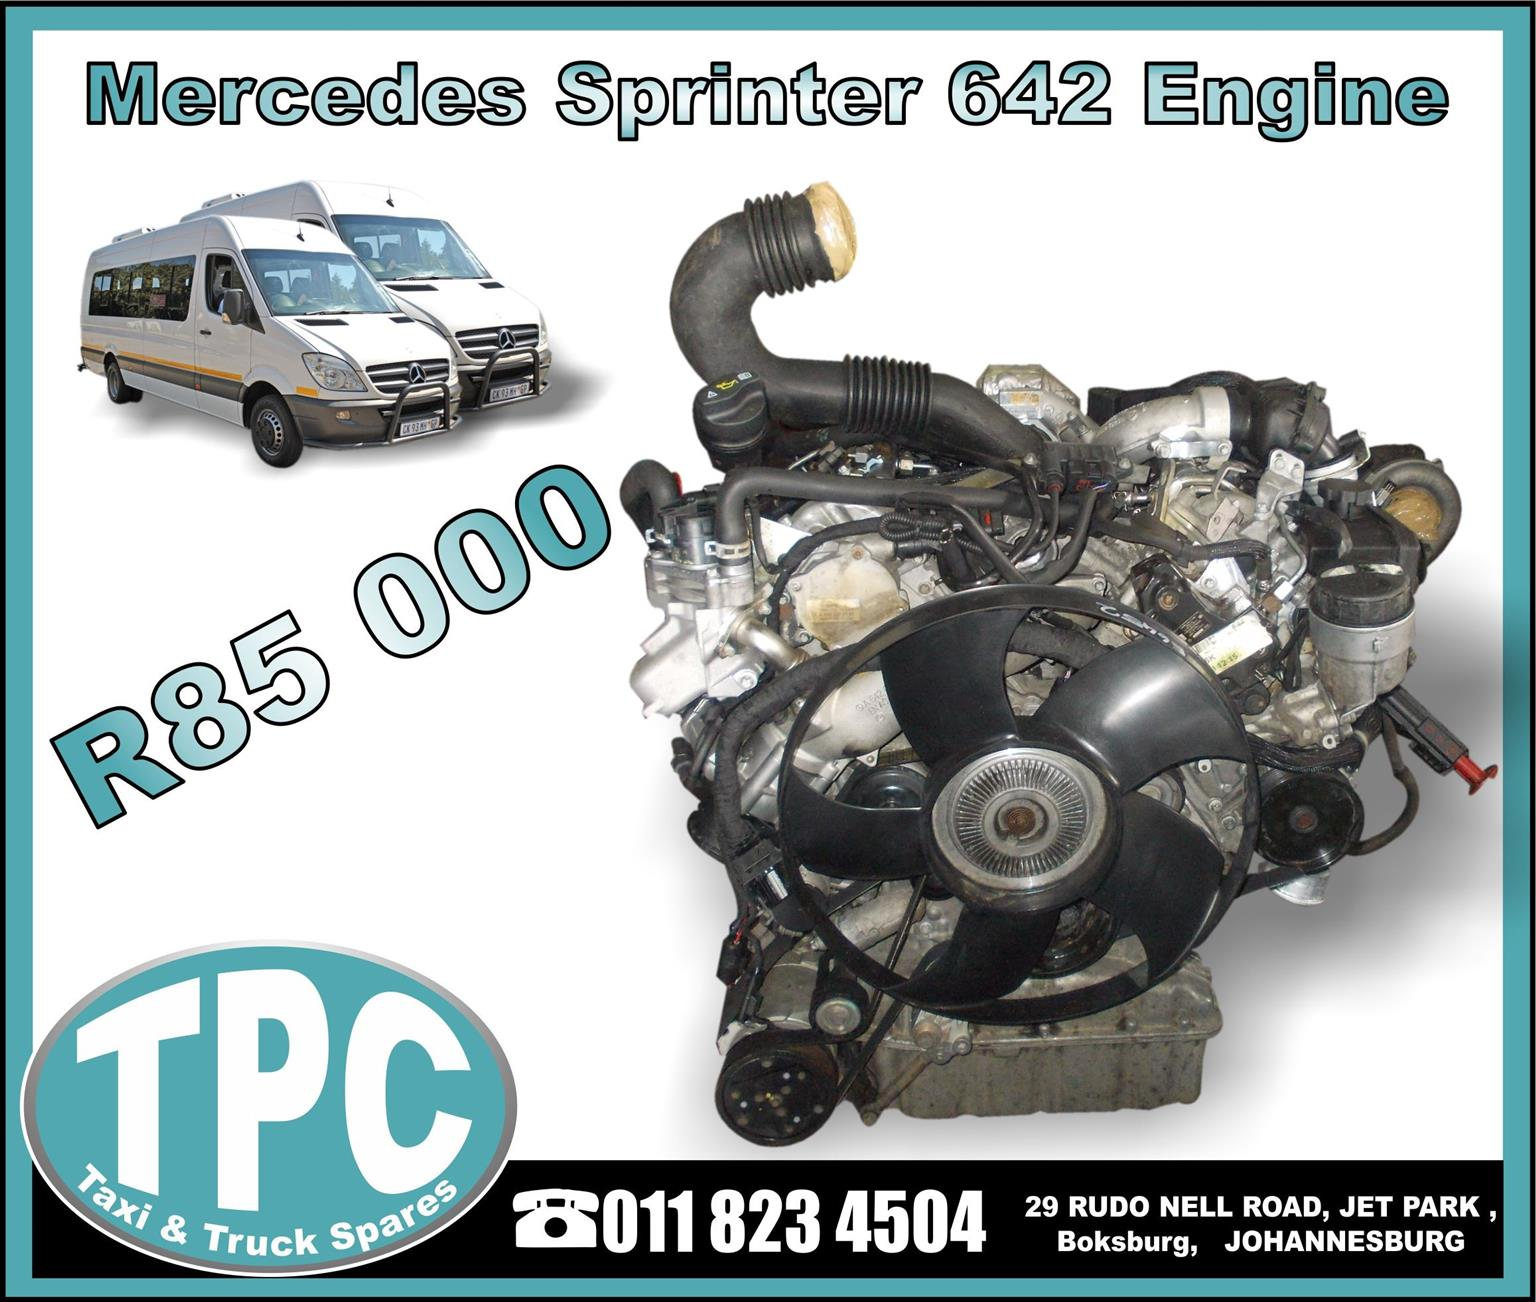 Mercedes Sprinter 642 Engine - USED - New And Used Replacement Parts.